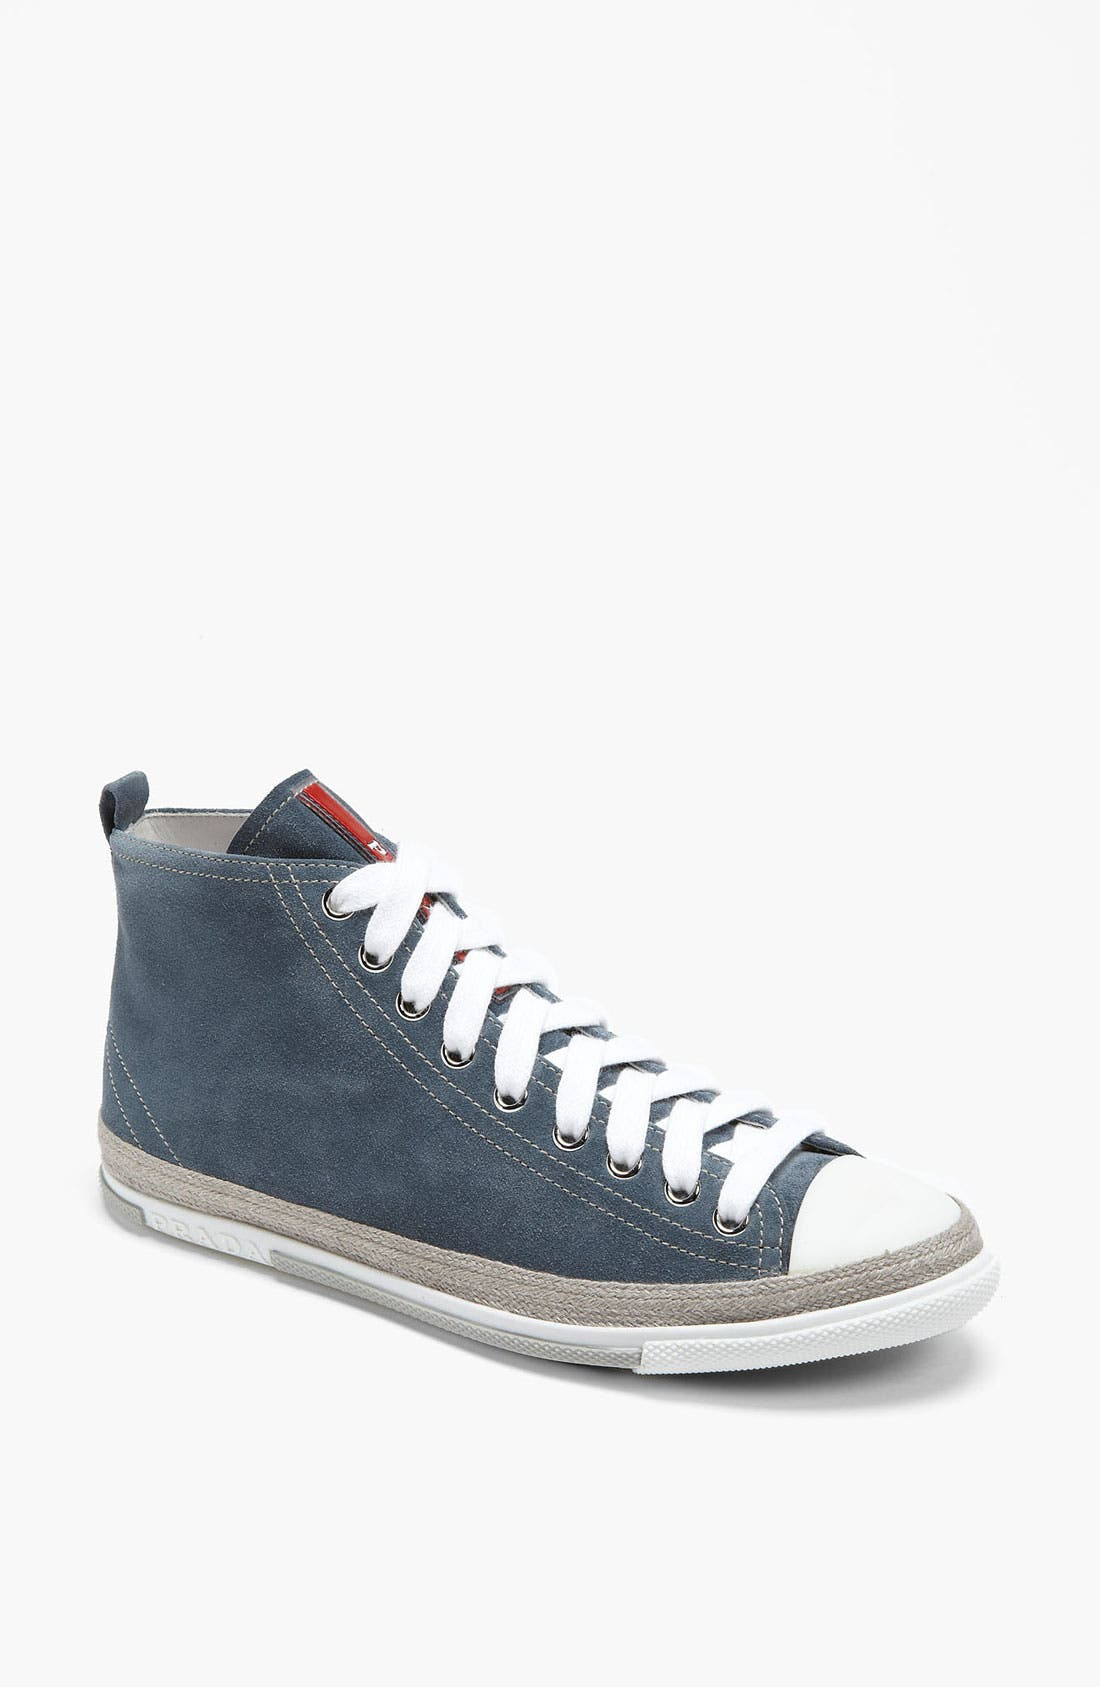 Alternate Image 1 Selected - Prada High Top Sneaker